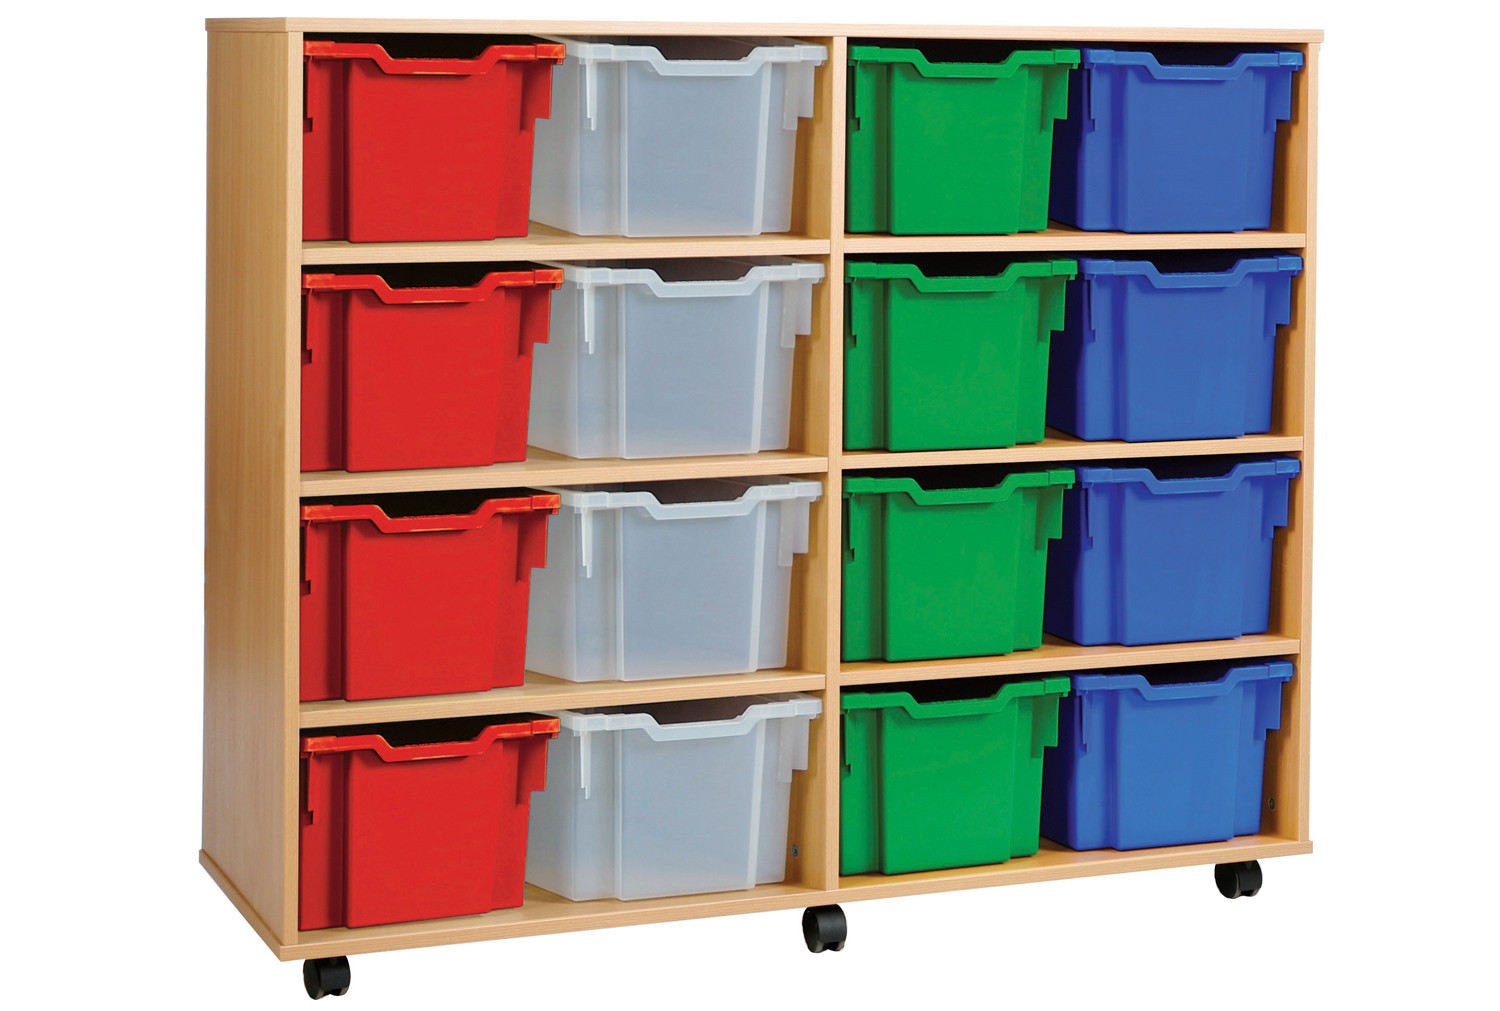 16 Extra Deep Tray Storage Unit. Find Loads More Colours, Materials & Styles Online - Buy Office Furniture Online